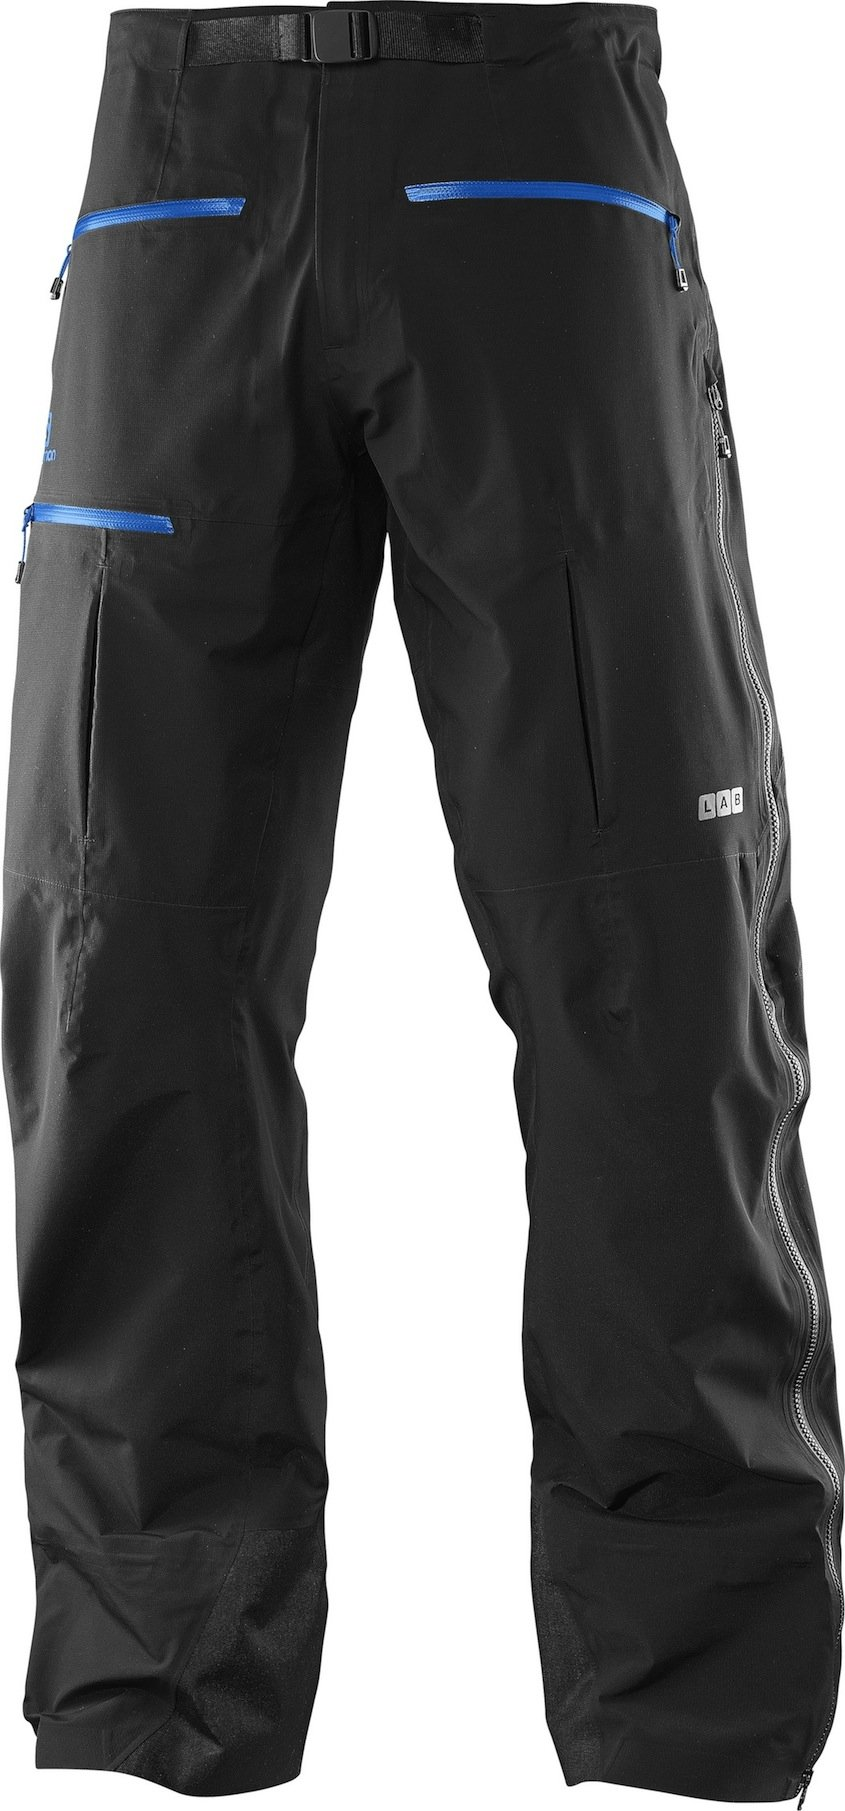 airFreshing_2016_Salomon_Sommerkolektion__S-LAB_X_ALP_PRO_PANT_M_black__Men